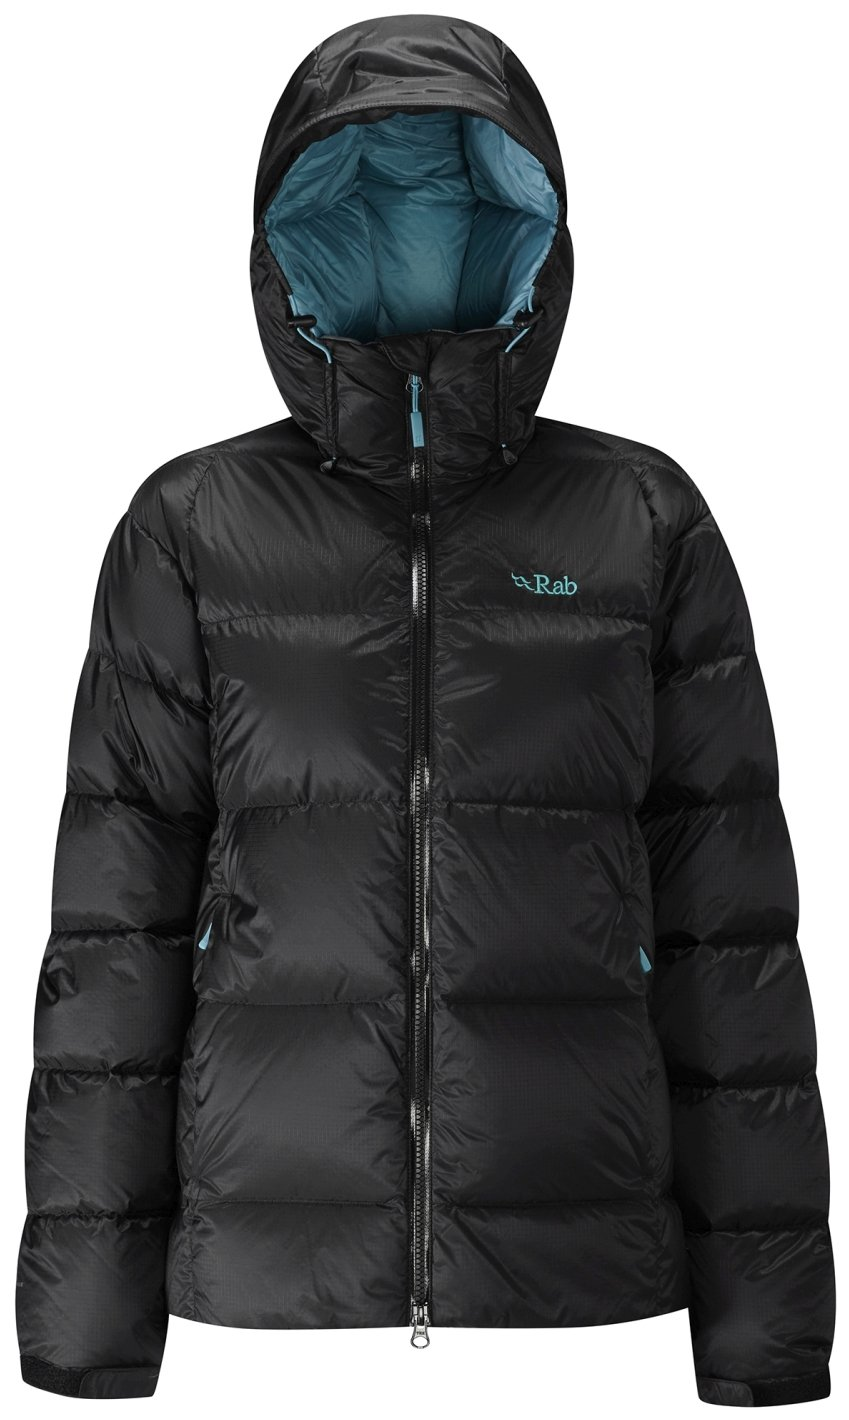 Rab Neutrino Endurance Jacket - Women's Black/Seaglass 8